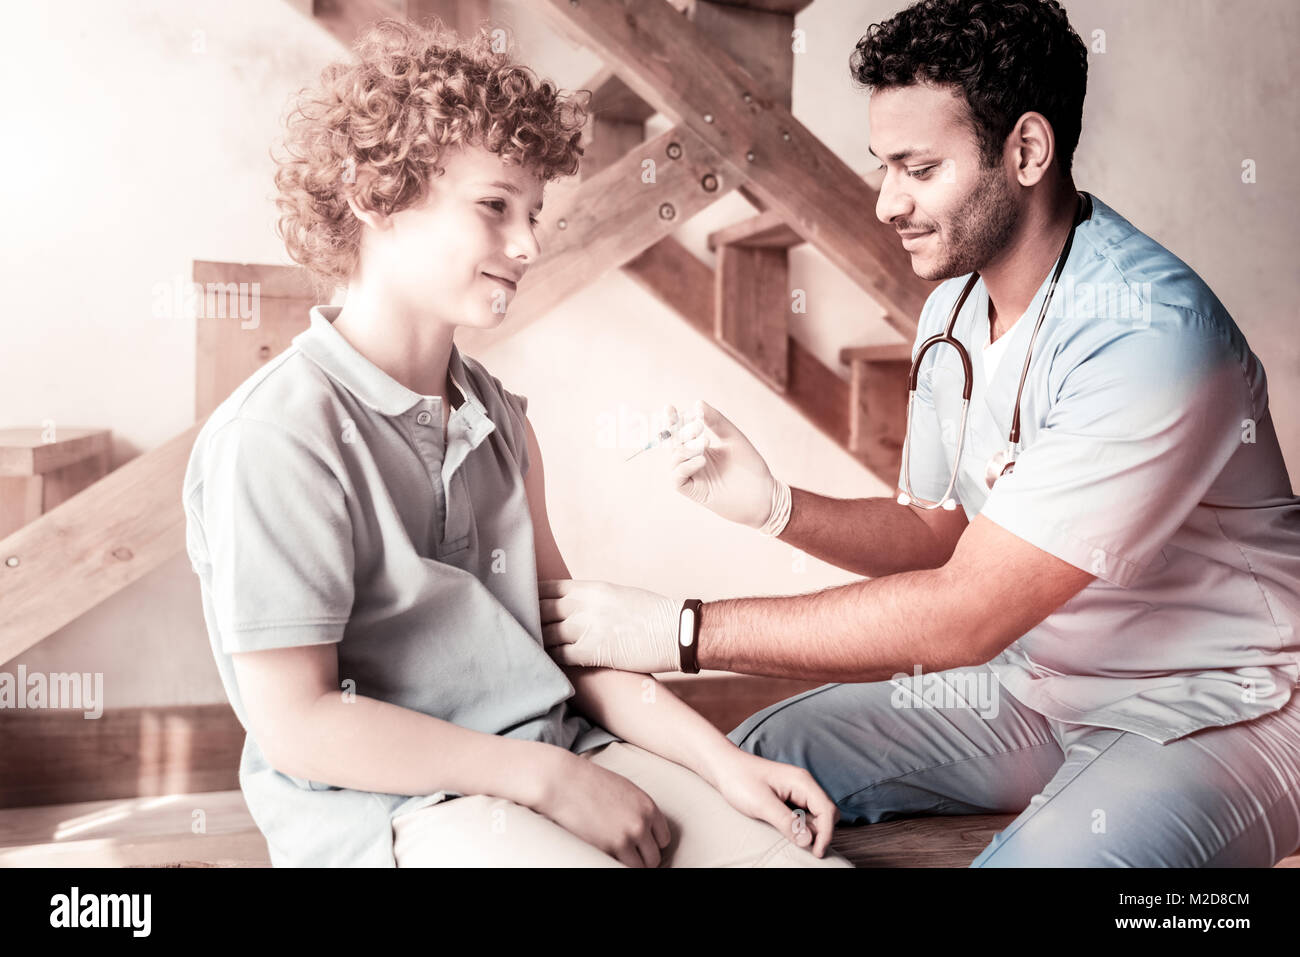 Male doctor vaccinating relaxed teen boy - Stock Image